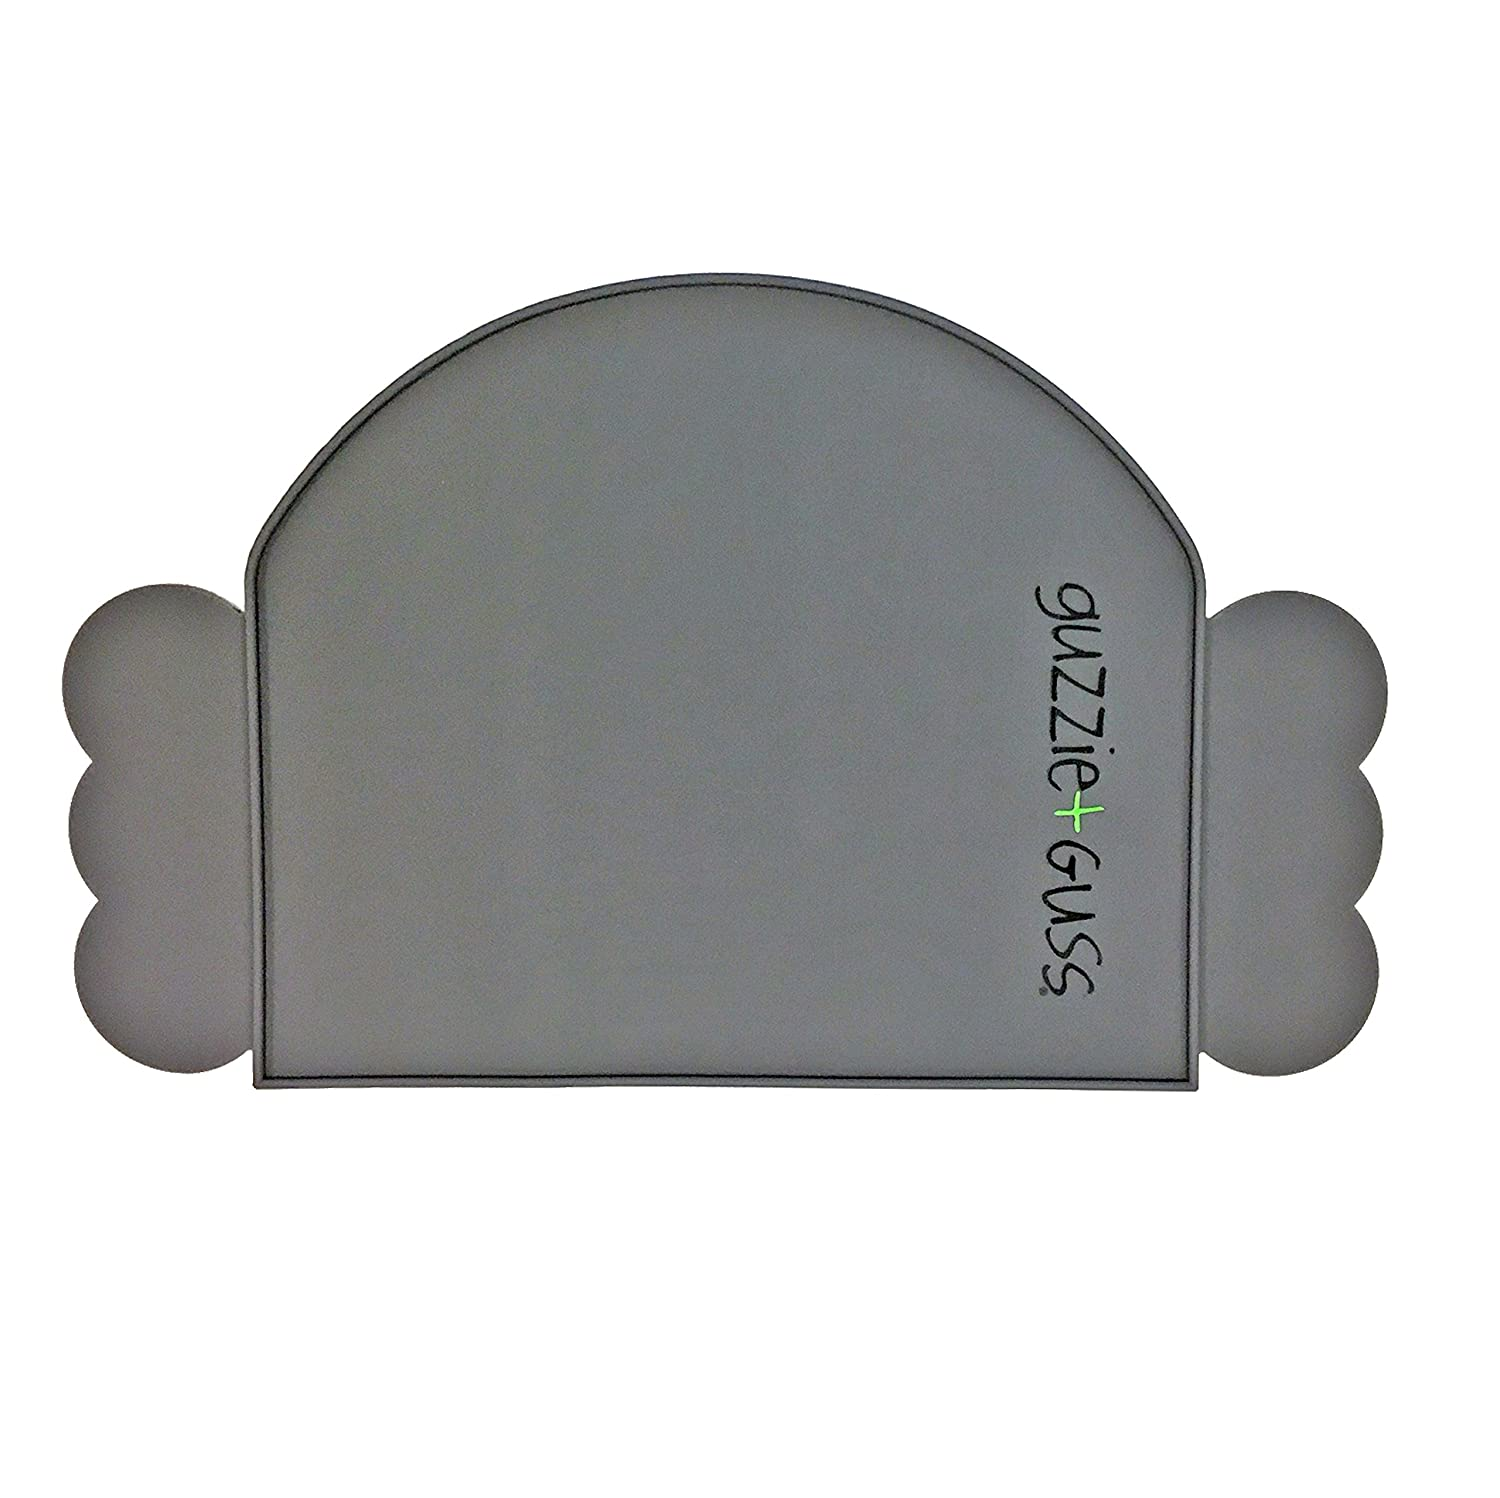 guzzie+Guss Perch Silicone Placemat, Grey GG205GRY